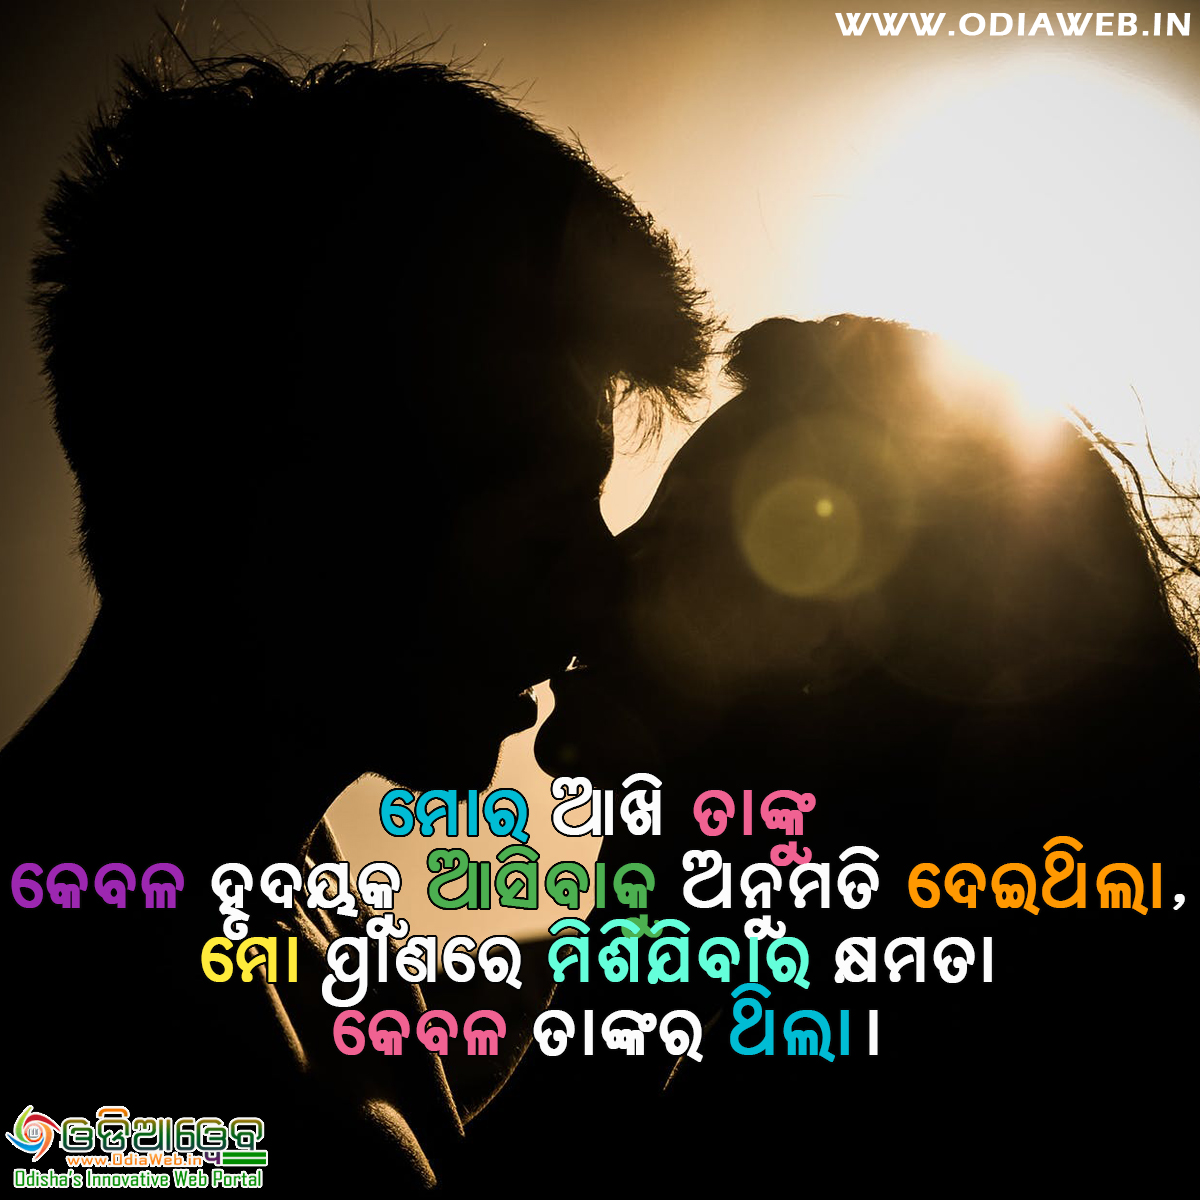 Odia Love Quotes1